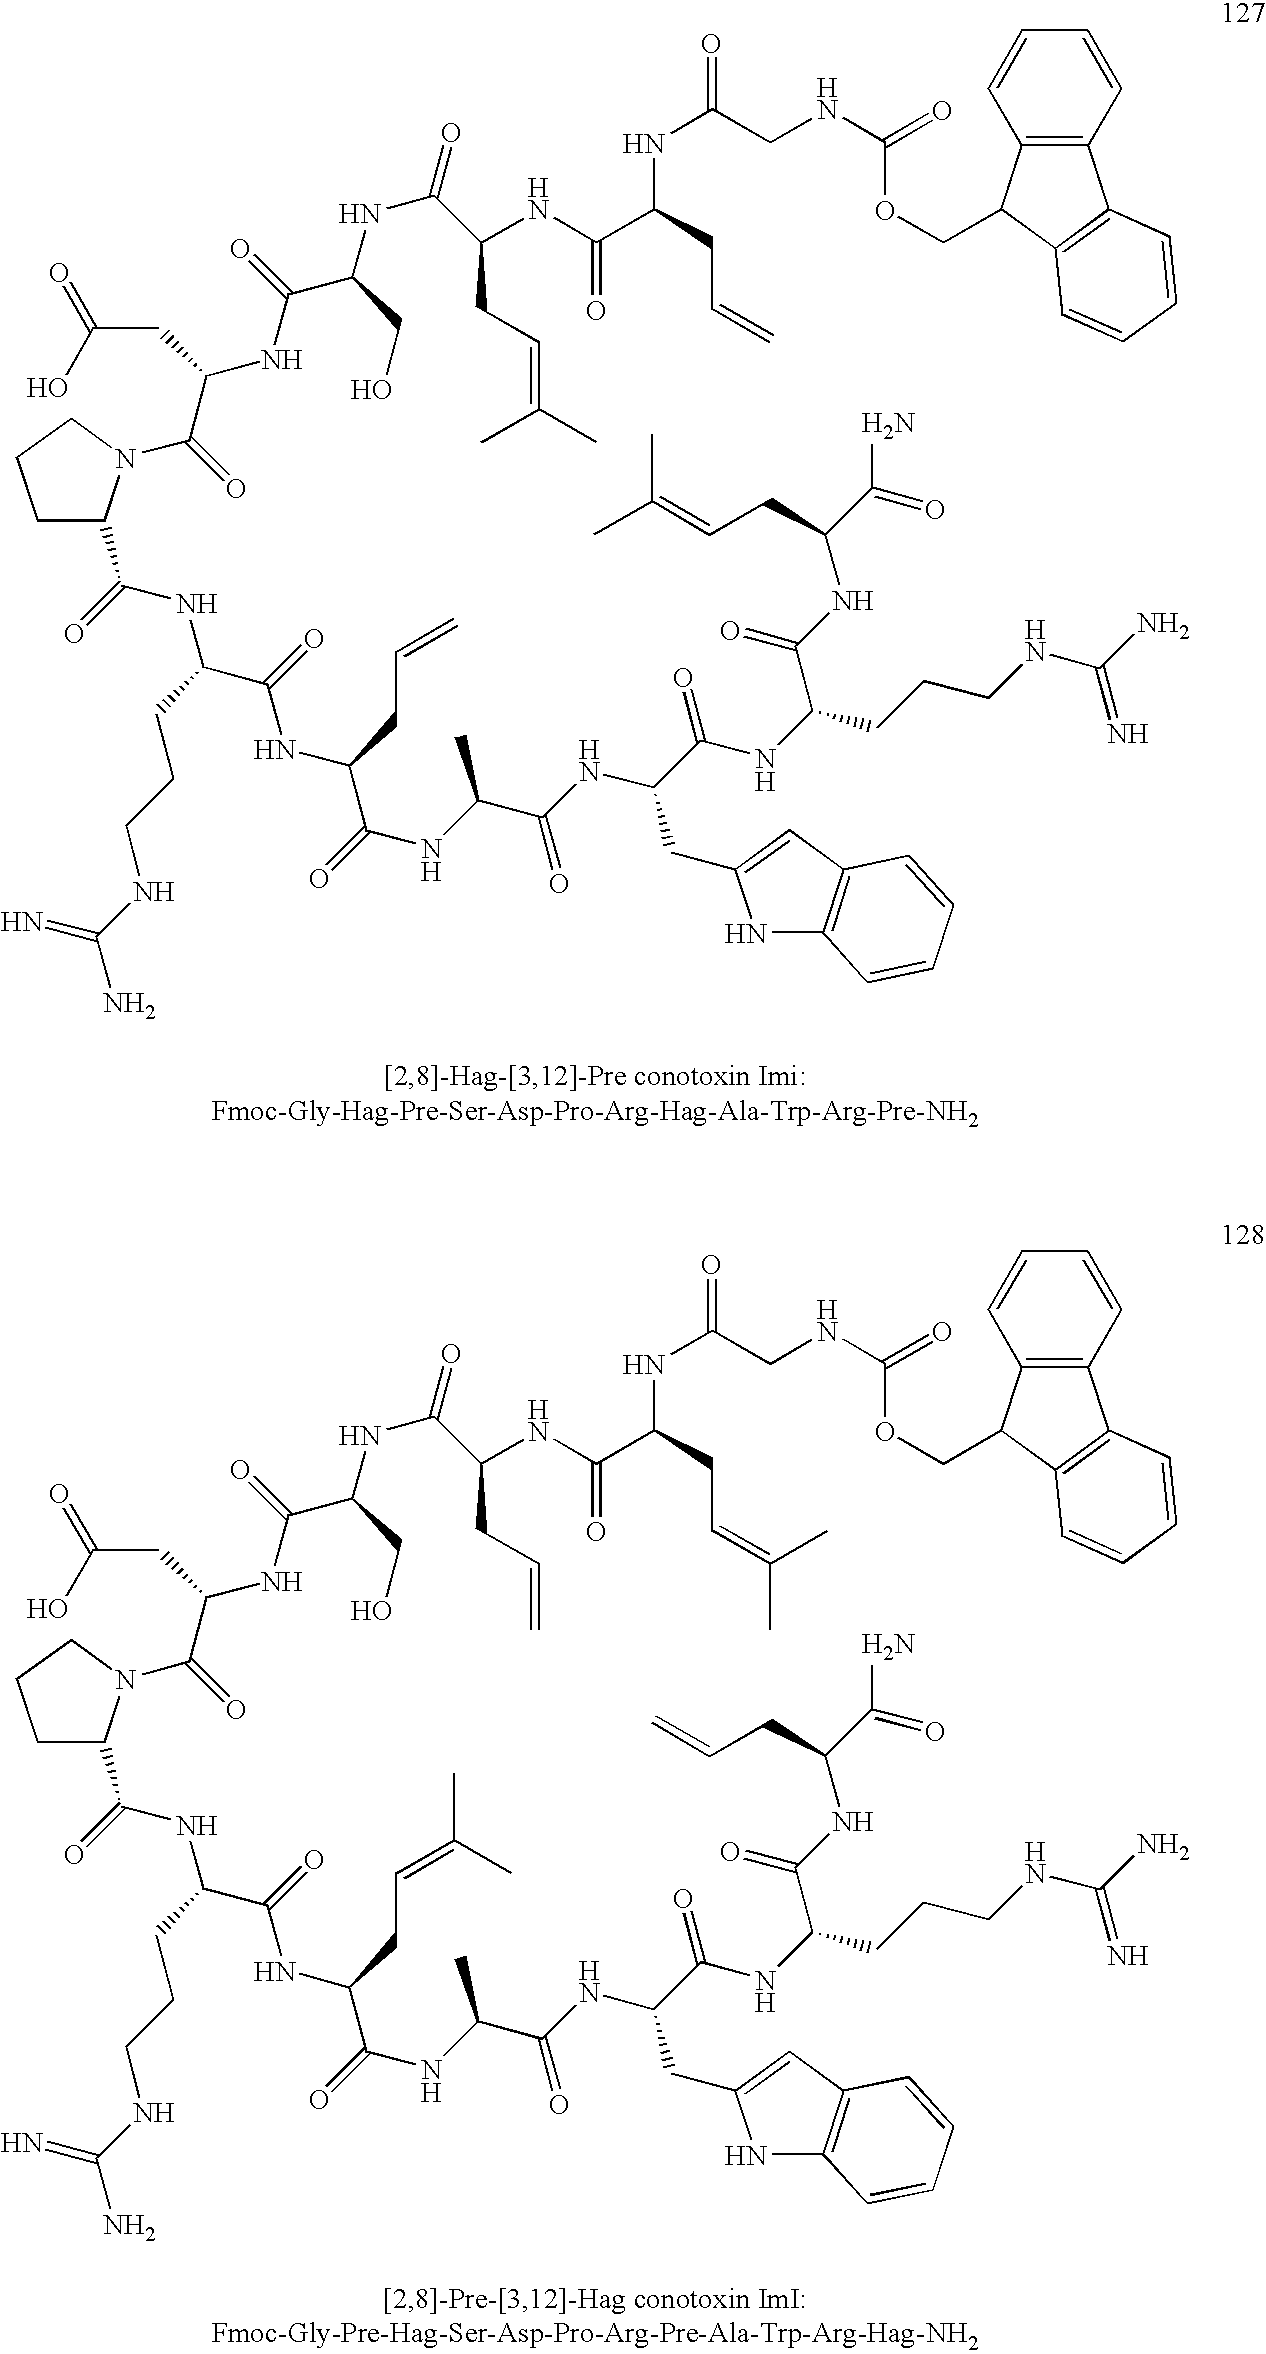 us20100022749a1 contoxin analogues and methods for synthesizing  figure us20100022749a1 20100128 c00087